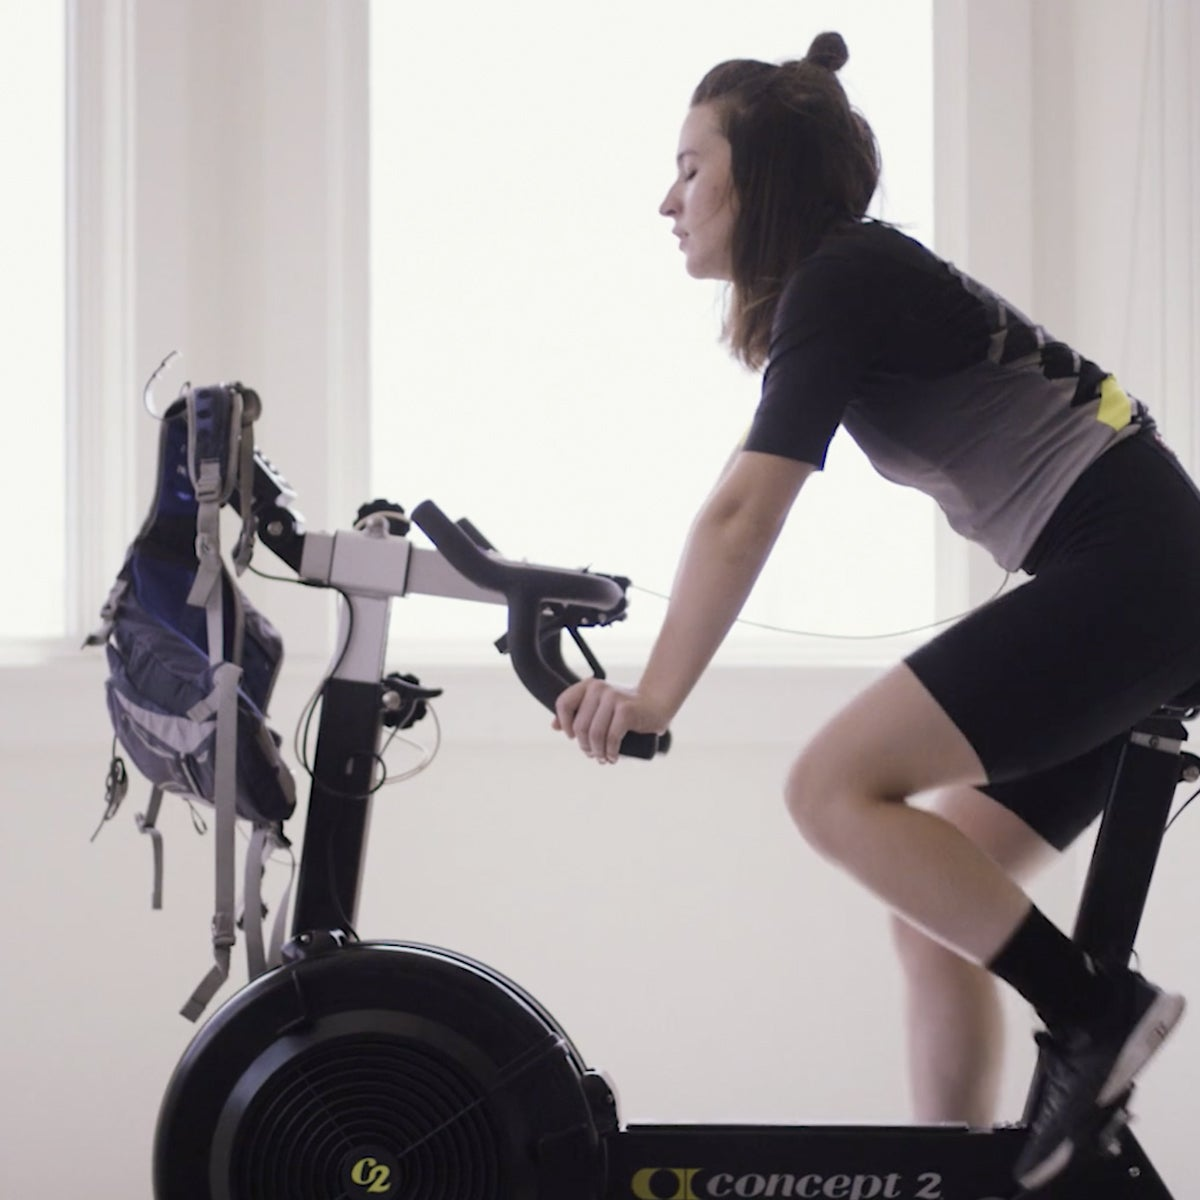 hannah jordan riding a cycling machine